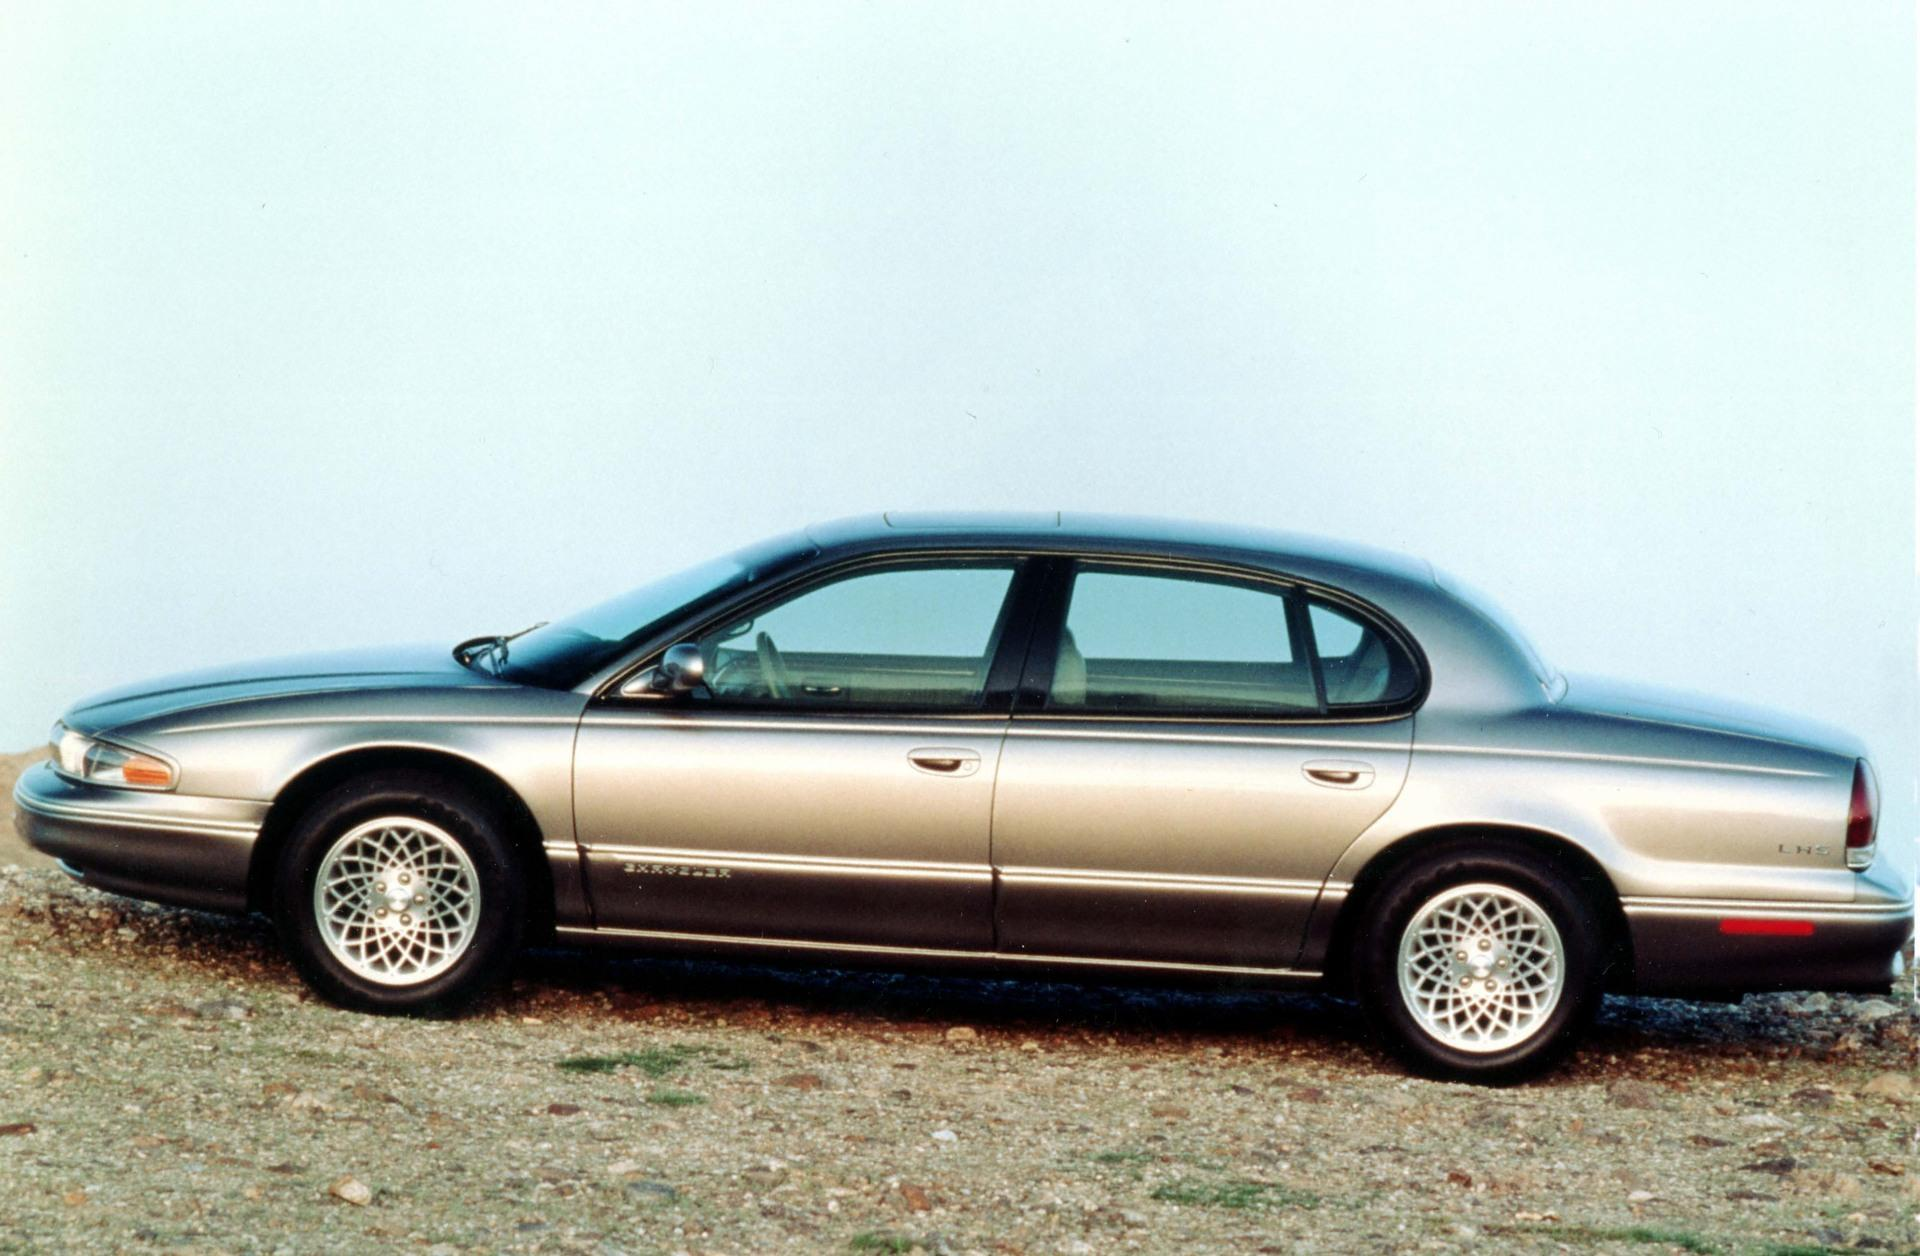 1994 Chrysler LHS Pictures, History, Value, Research, News - conceptcarz.com